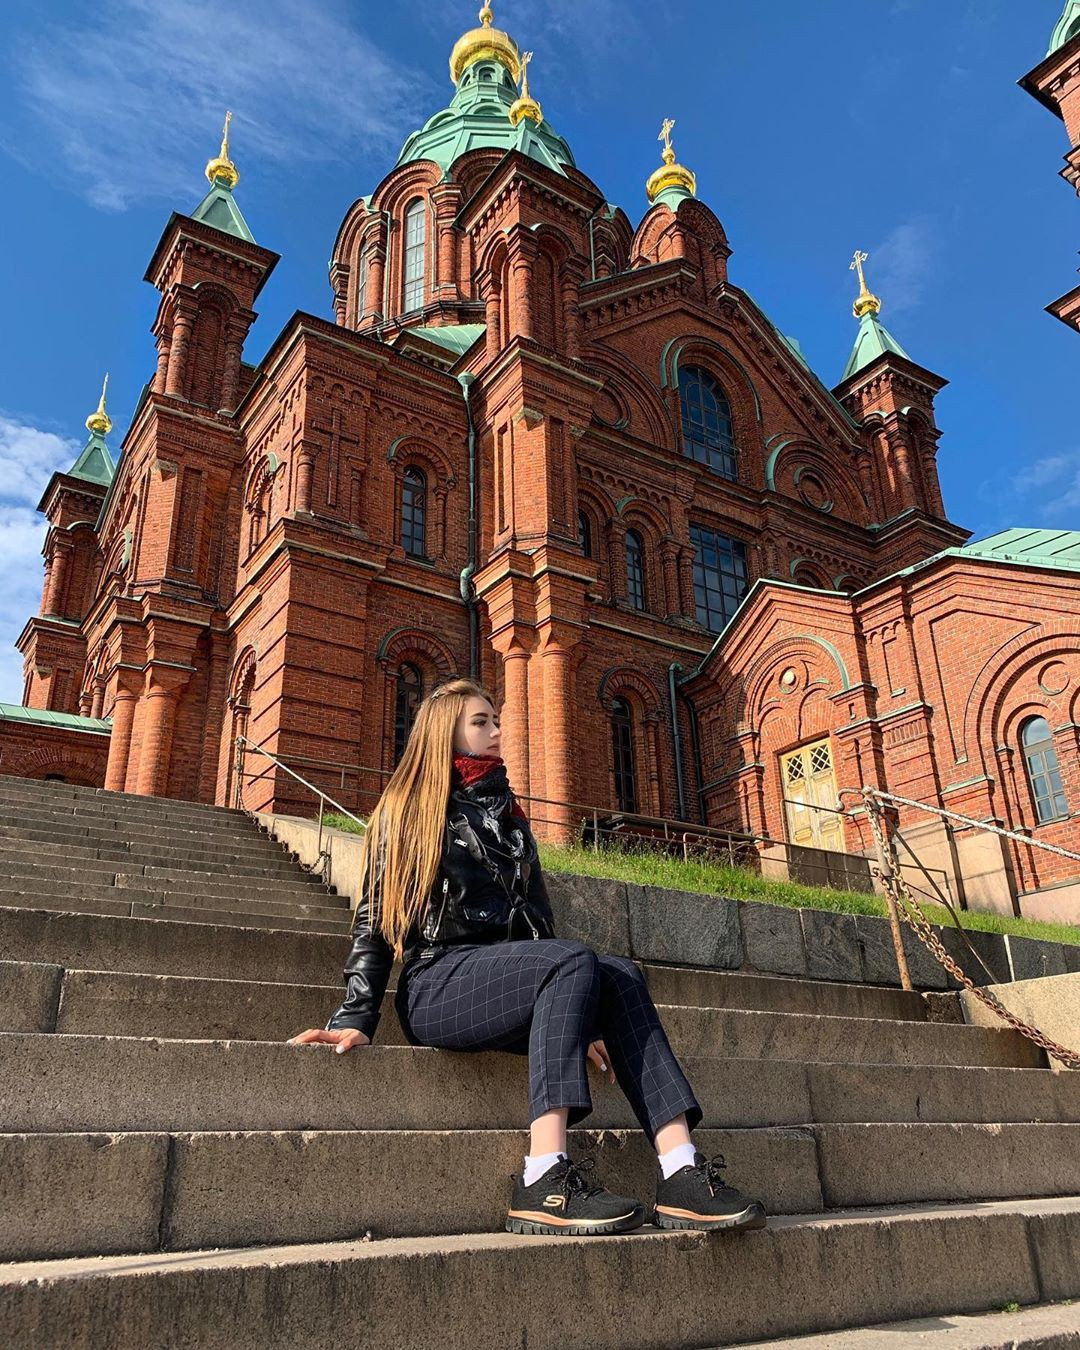 Finally! Love to see uspenski cathedral, Coffeeshop Owner